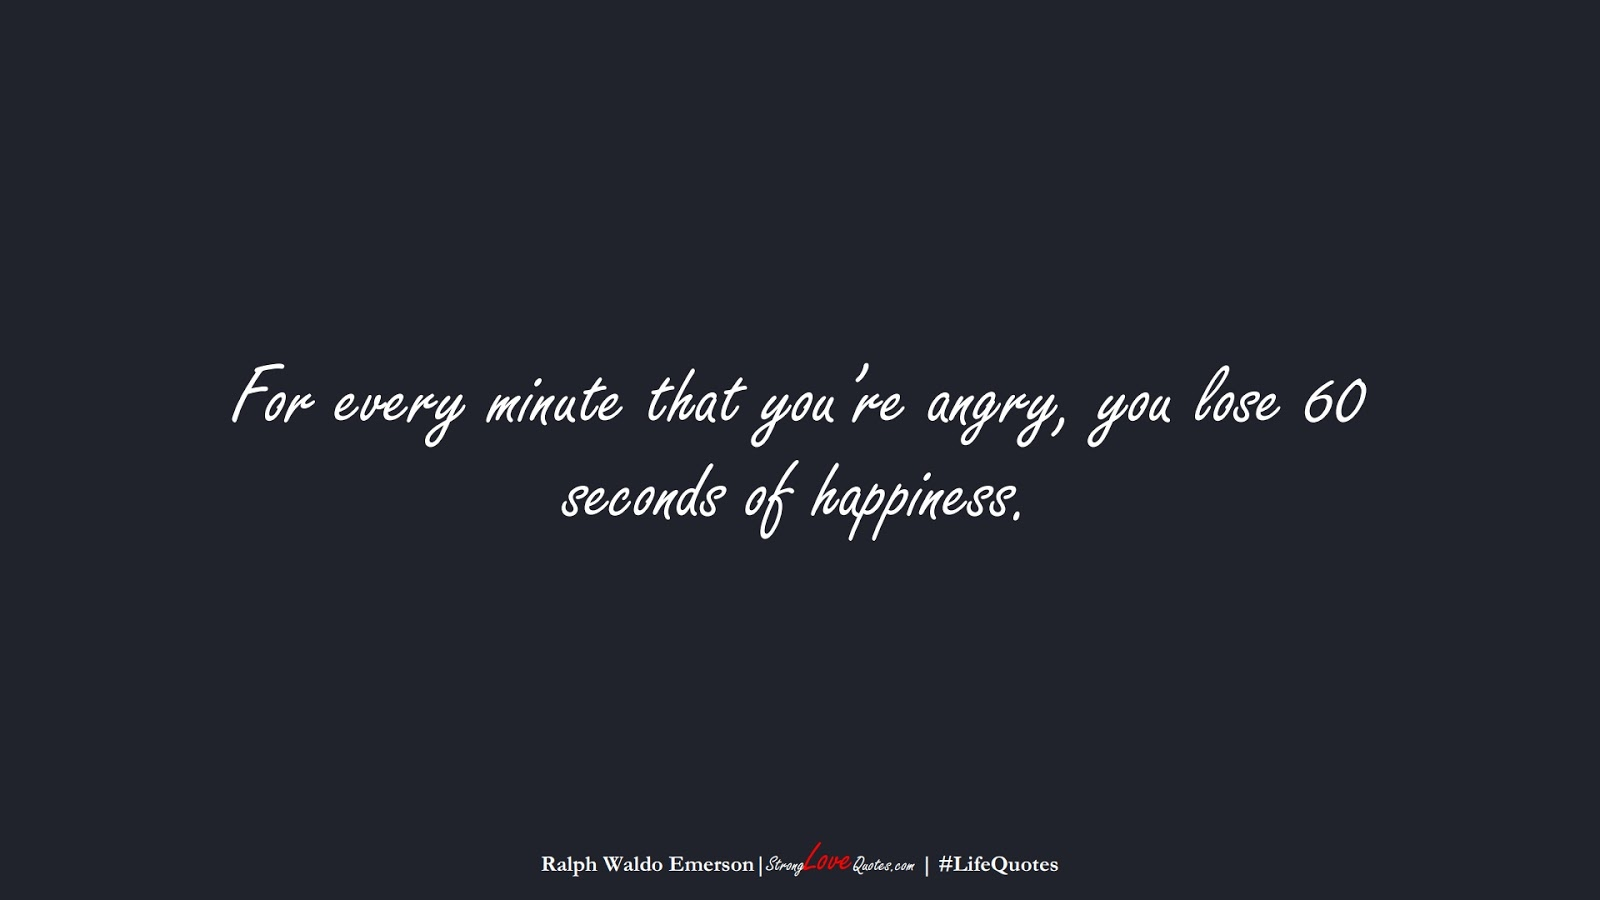 For every minute that you're angry, you lose 60 seconds of happiness. (Ralph Waldo Emerson);  #LifeQuotes